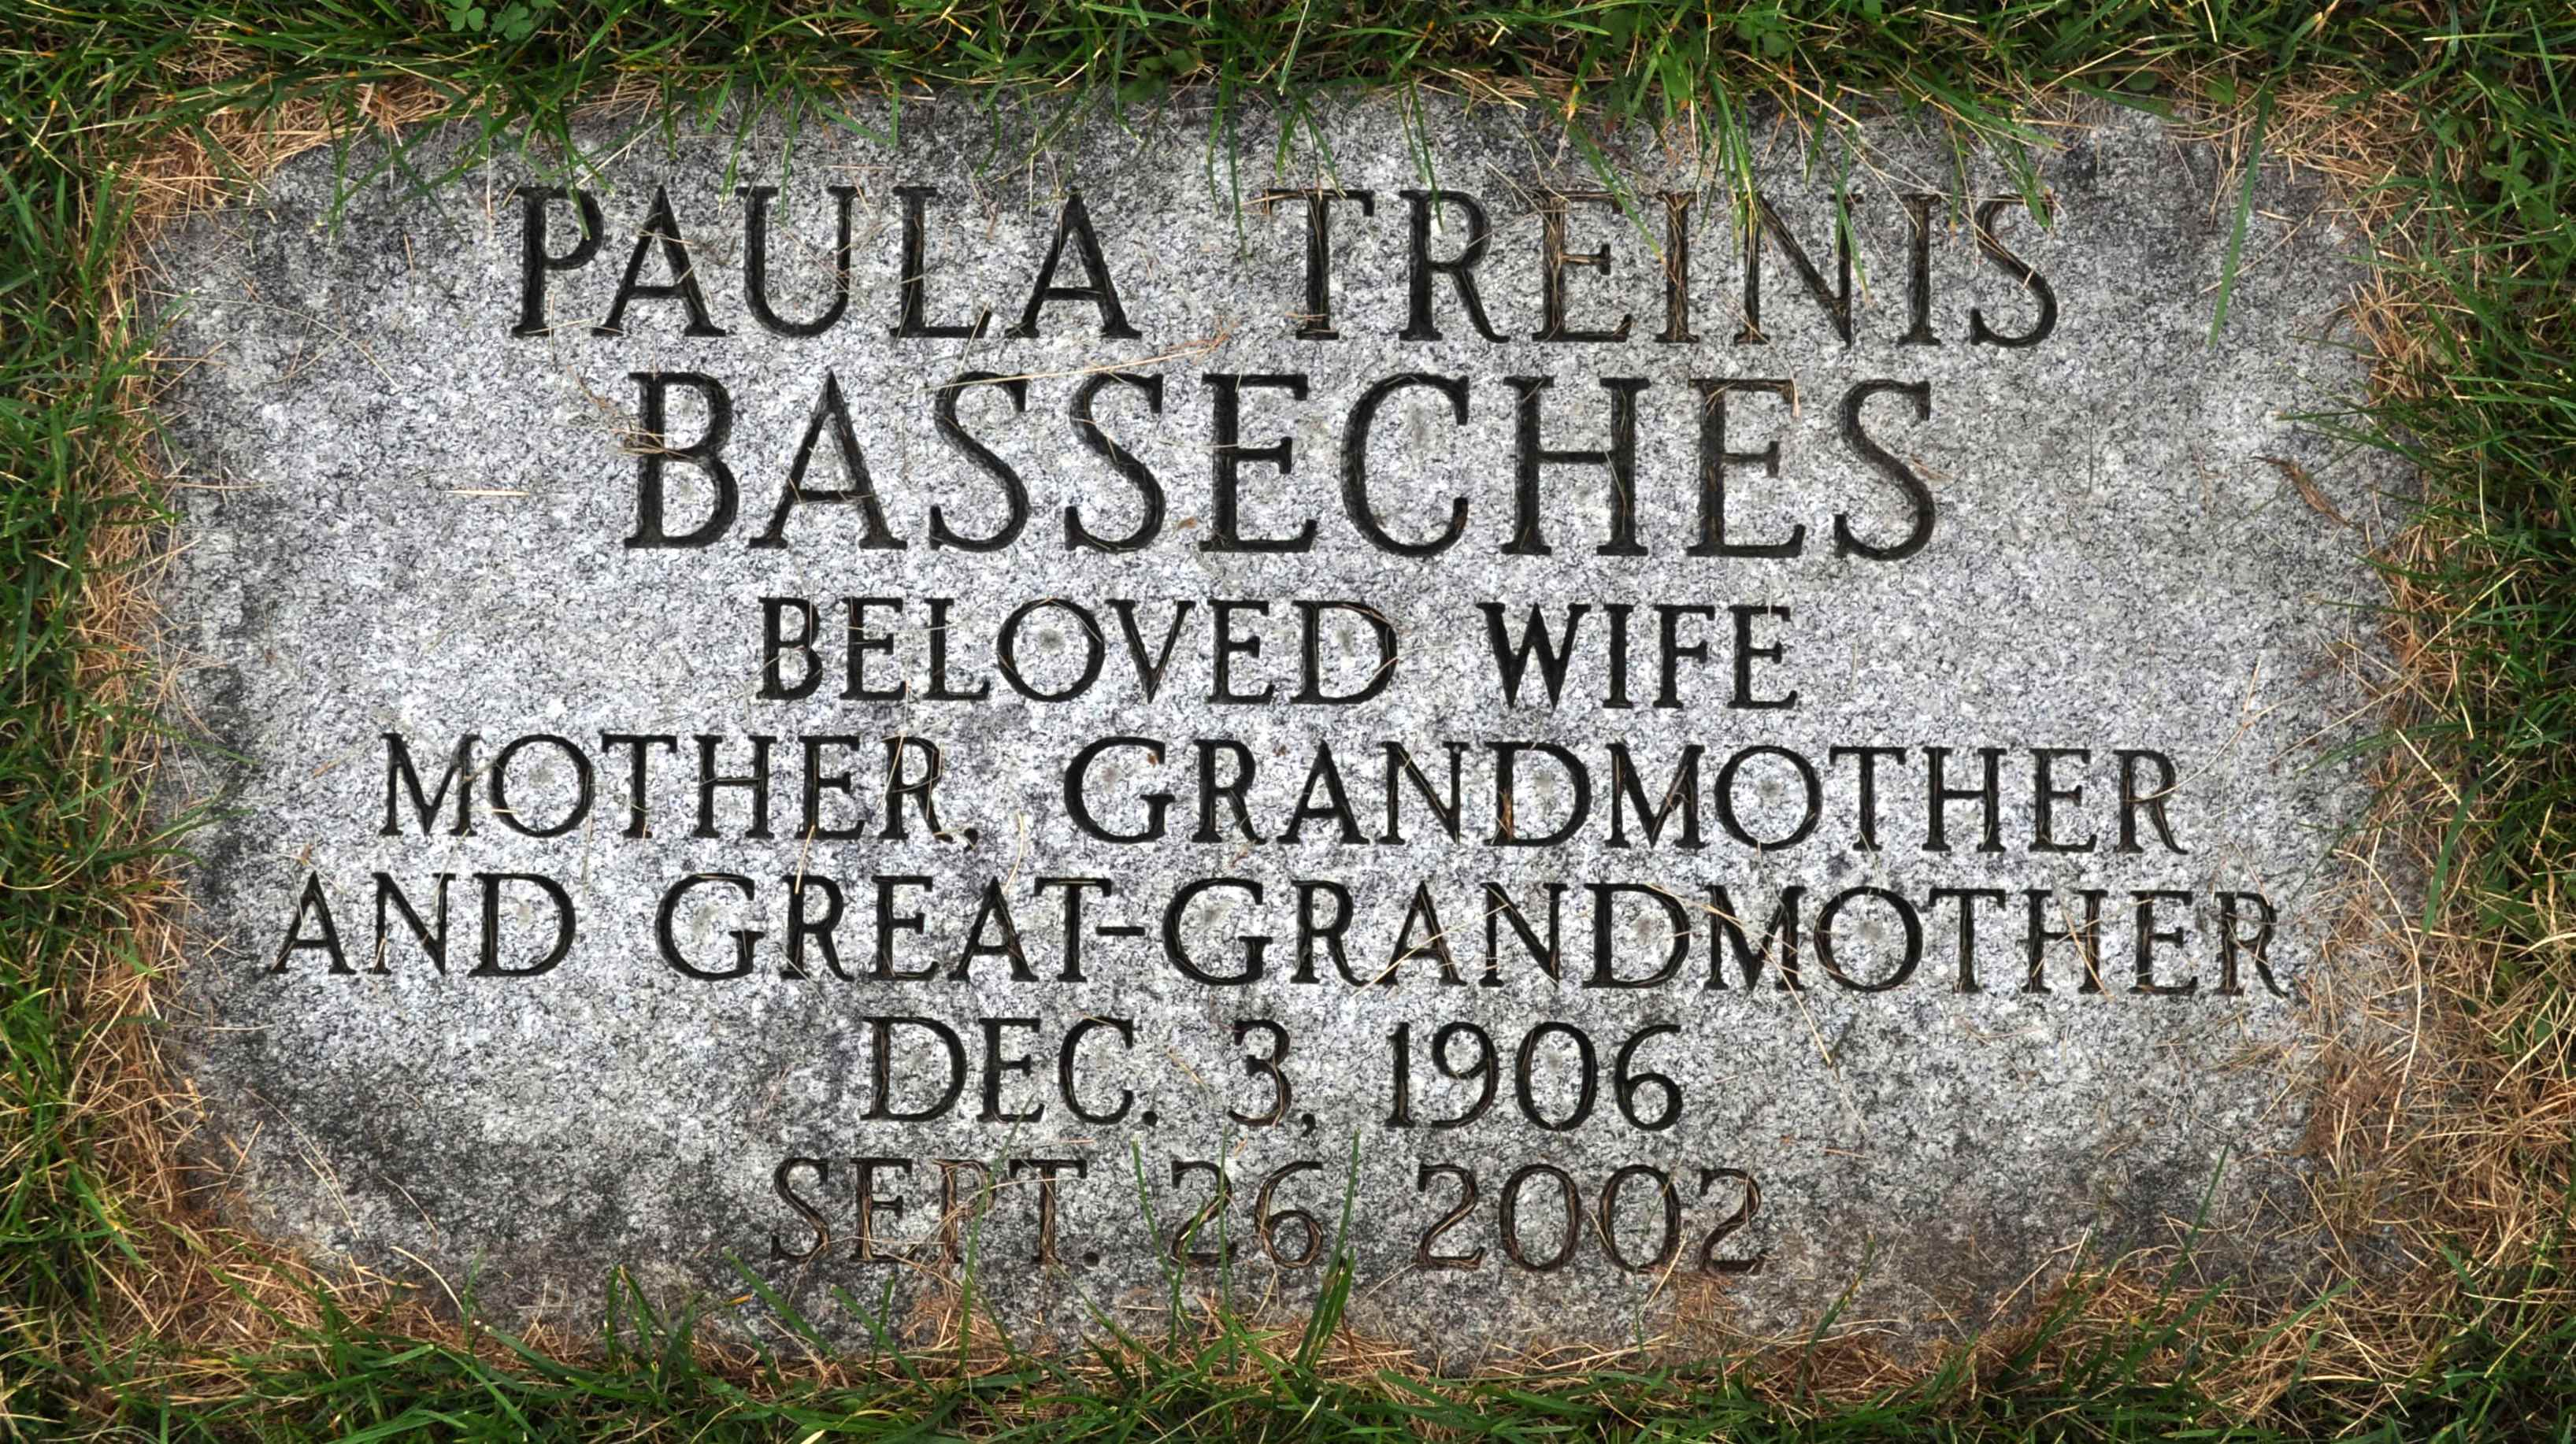 Paula Treinis Basseches (1906 - 2002) Find A Grave Memorial